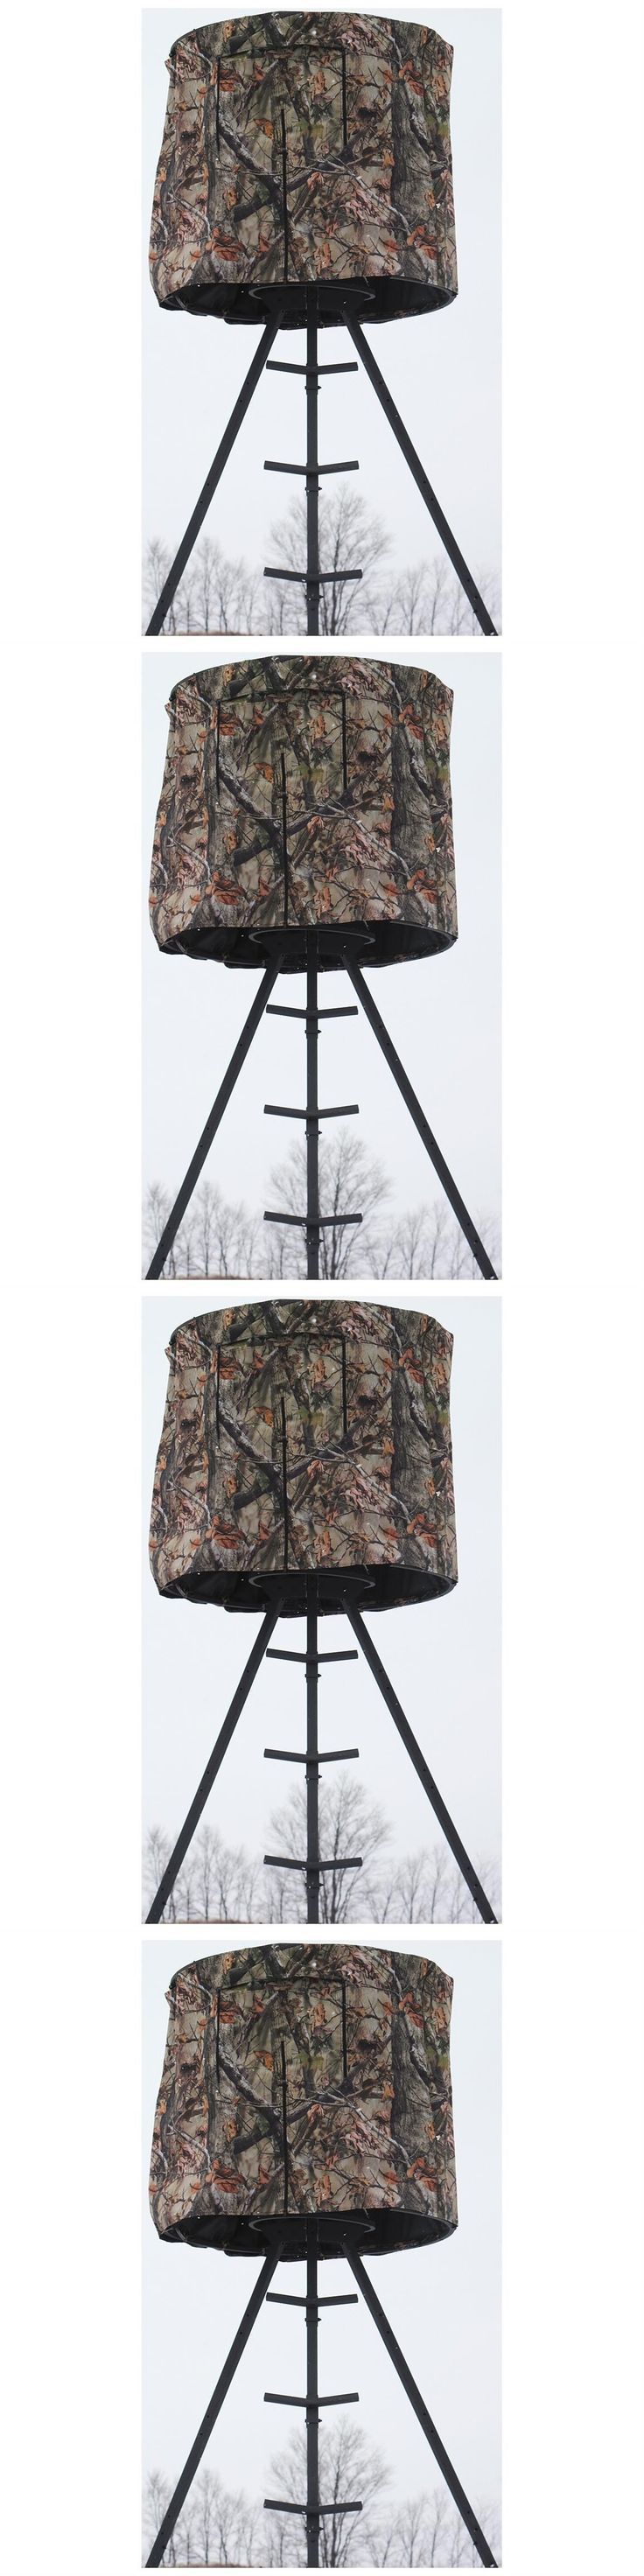 Blind and Tree Stand Accessories 177912: Tripod Deer Stand Blind Hunting Universal Round Camo Concealment Stay Protected -> BUY IT NOW ONLY: $78 on eBay!